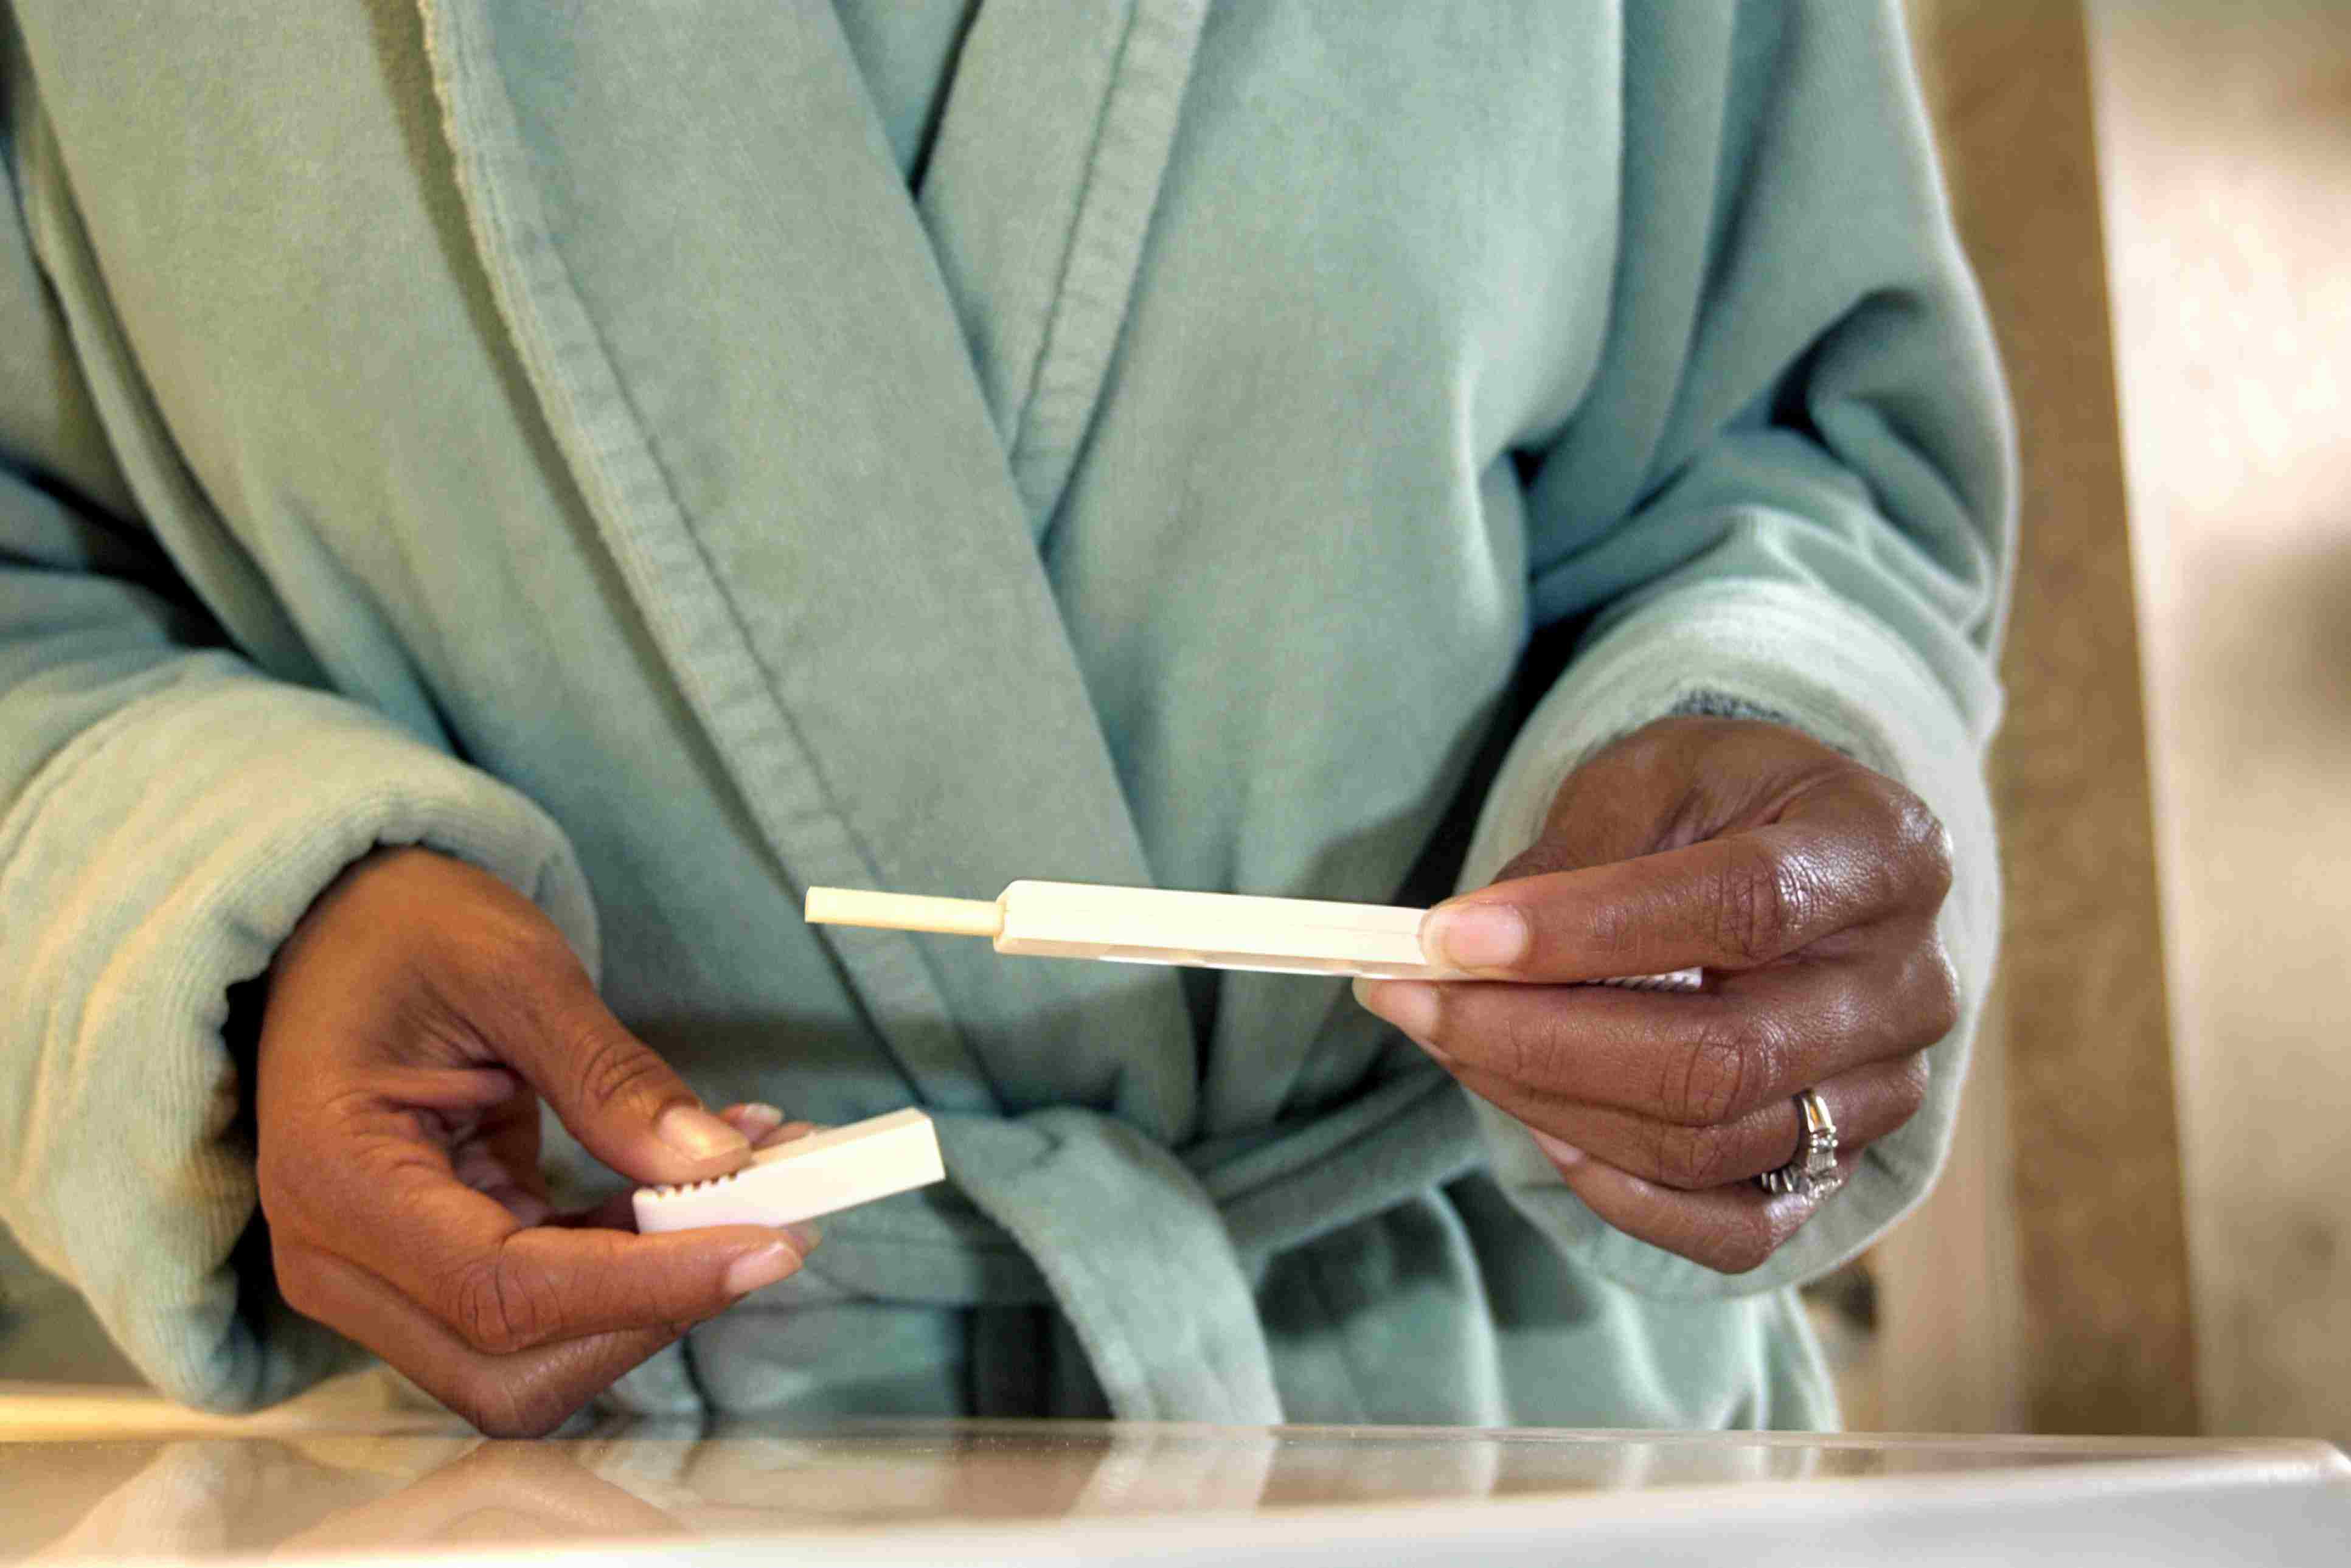 The Best Way to Take a Home Pregnancy Test